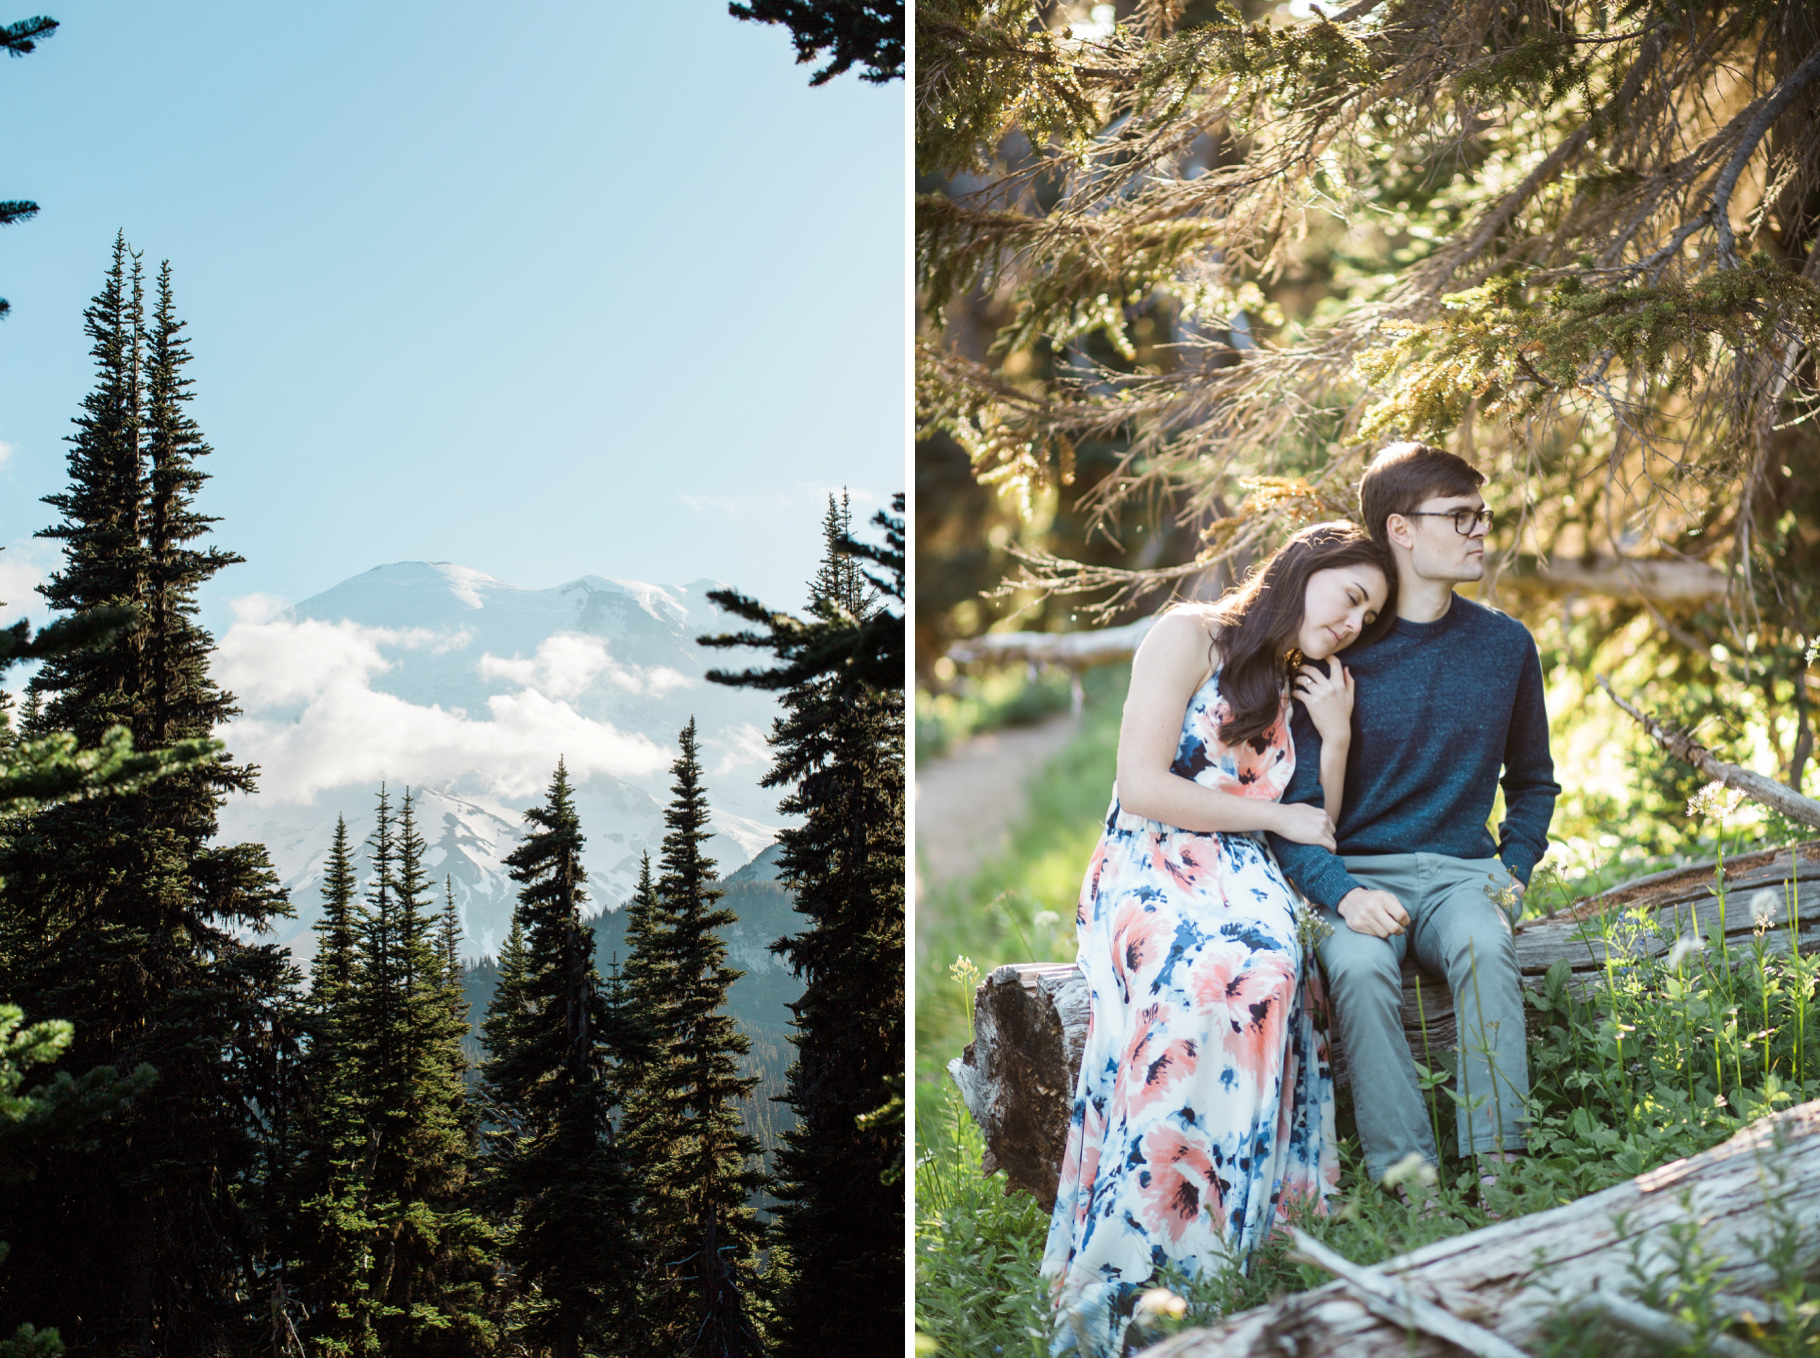 25-Mt-Rianier-Photography-Anniversary-Session-Adventure-Hiking-Seattle-Wedding-Photographer